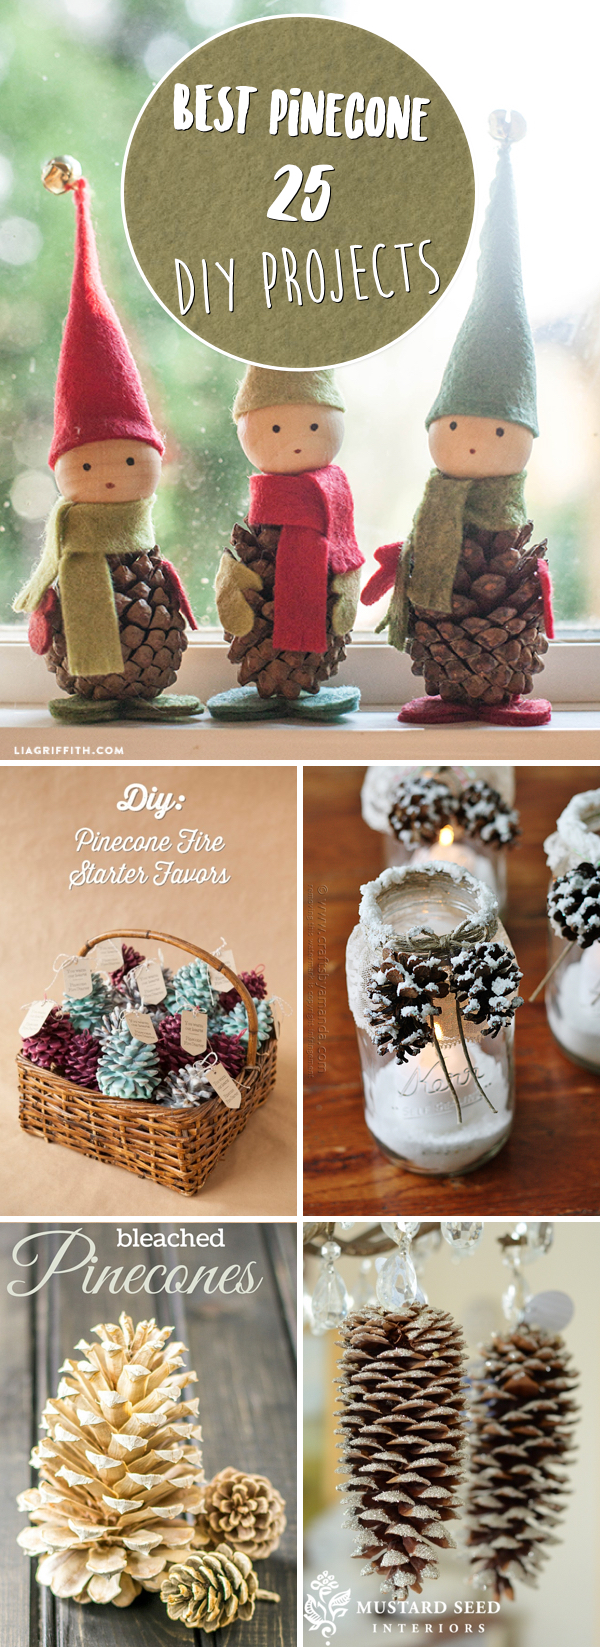 20 Pinecone DIY Projects Making Fall a Thing of Rustic Natural Beauty!